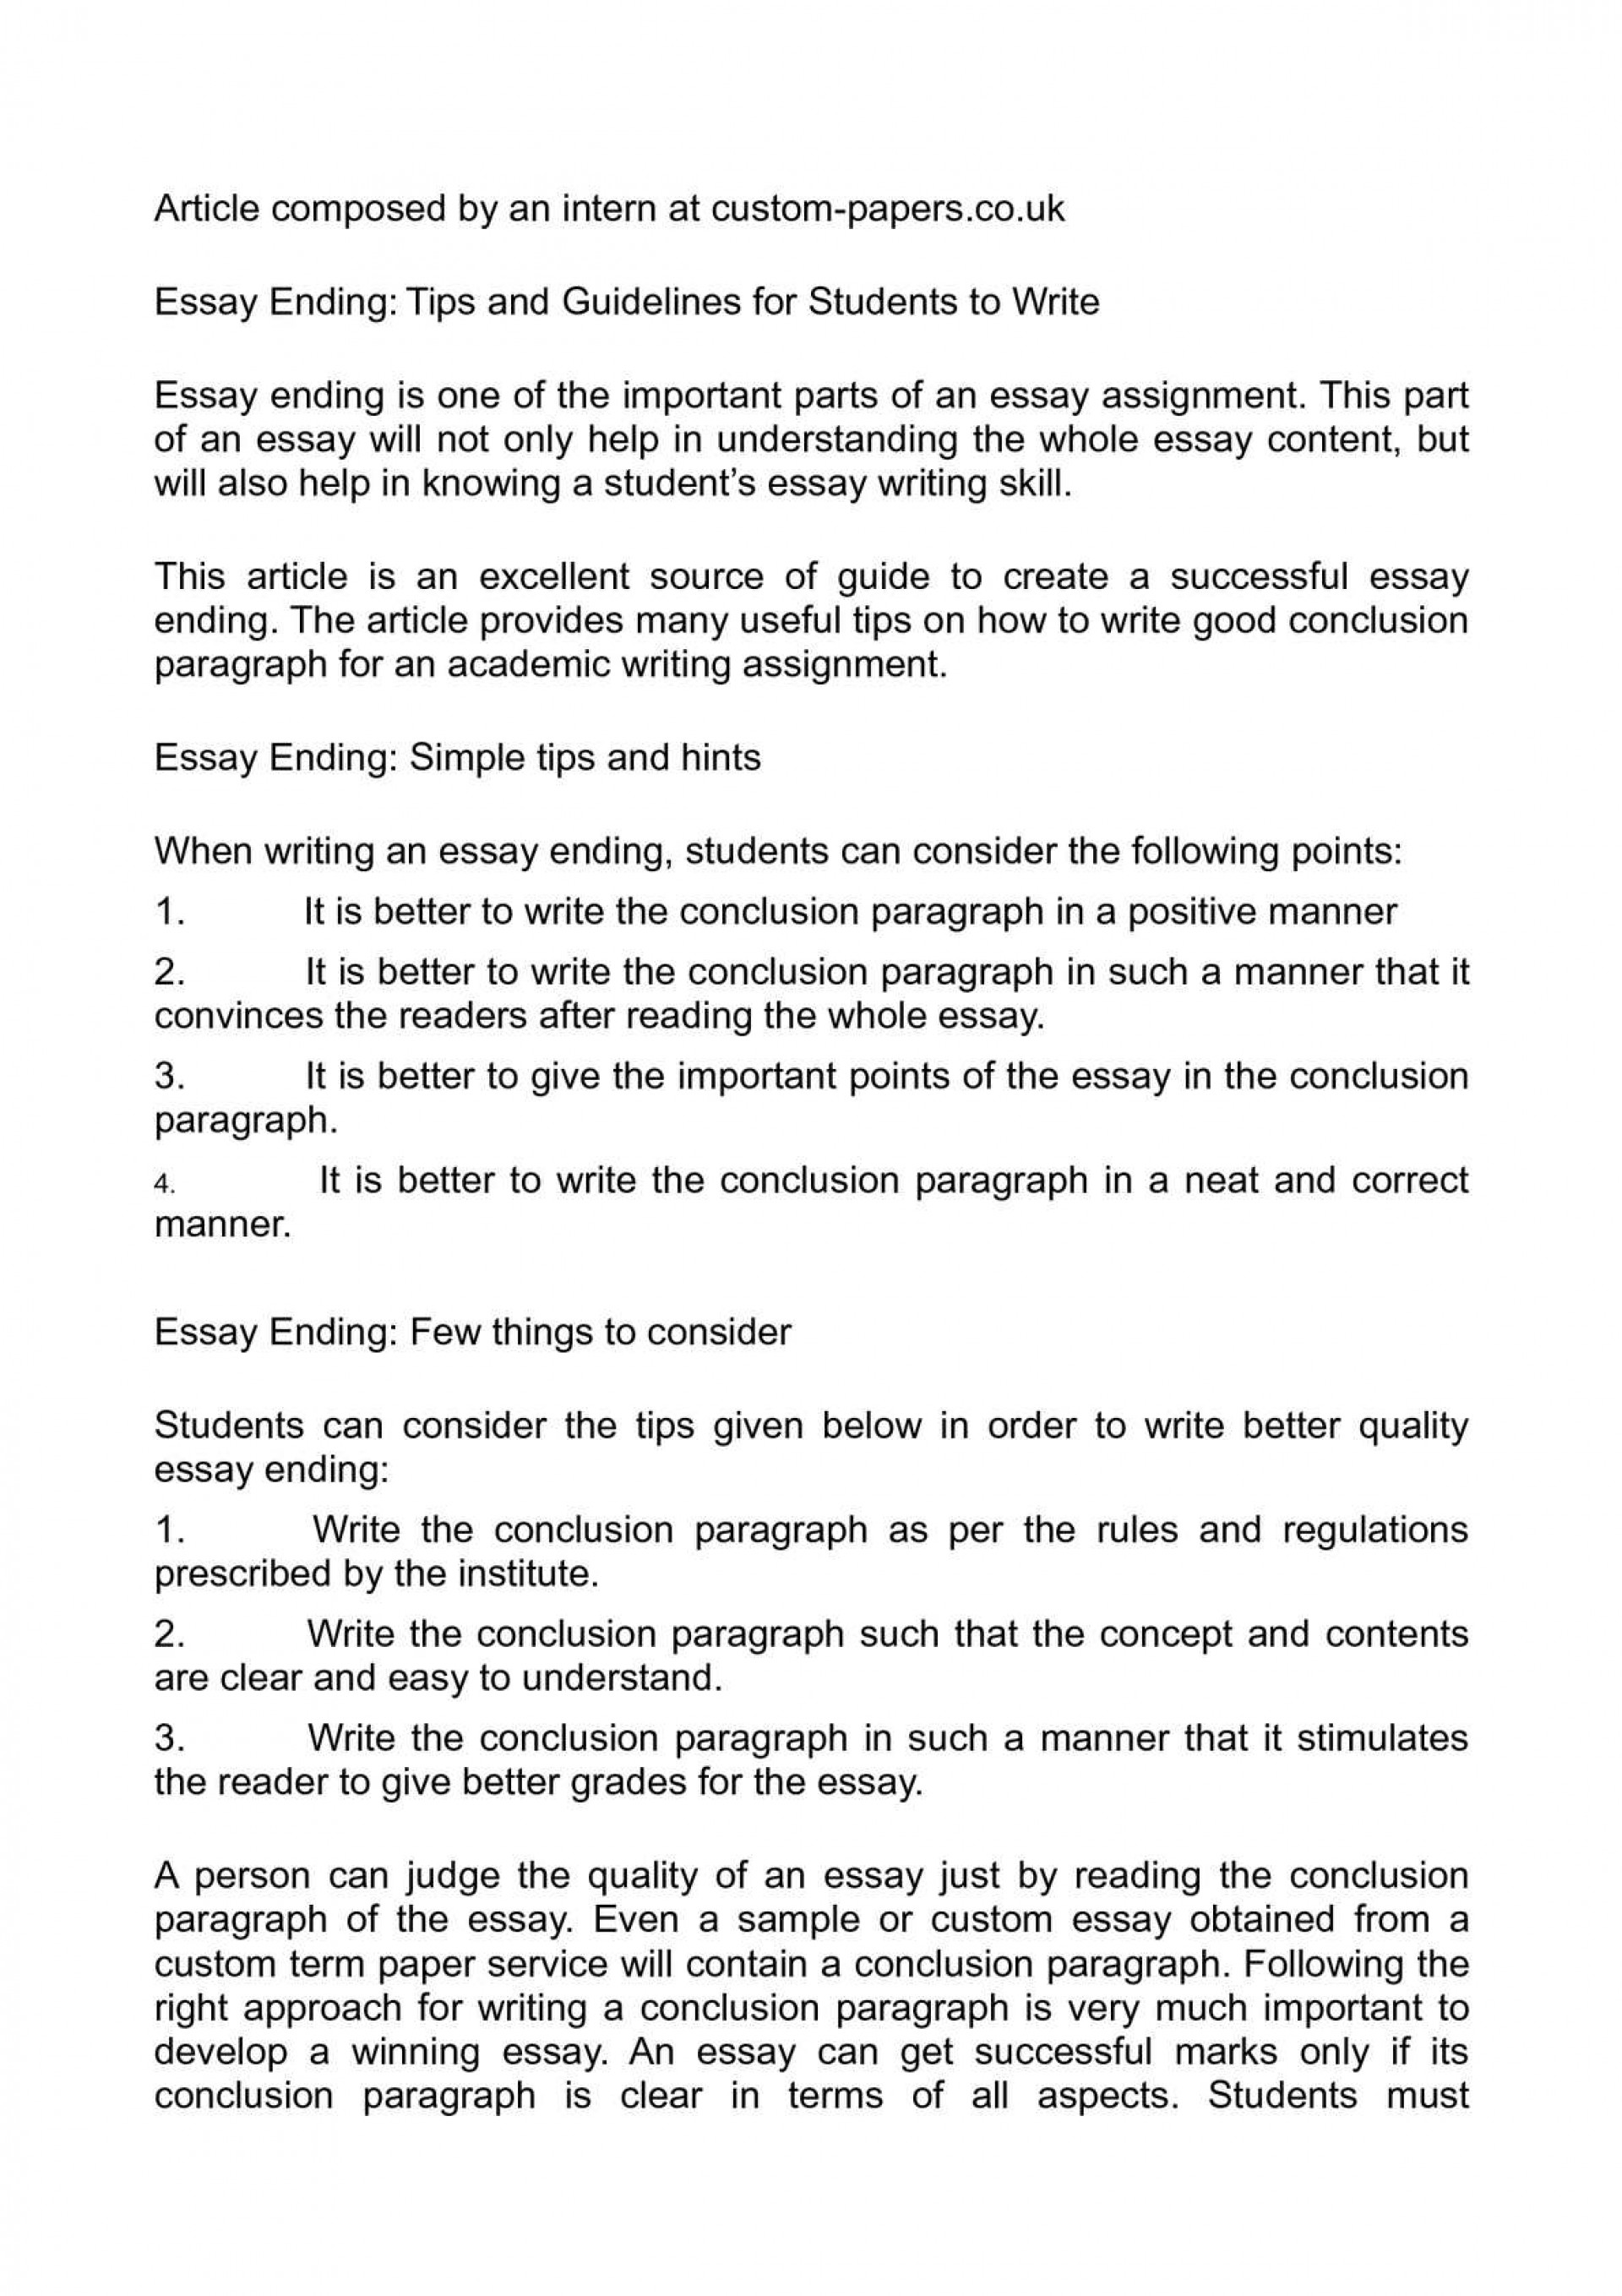 001 Parts Of An Essay Ending Tips And Guidelines For Students To Write Writing Persuasi Pdf Three Persuasive Stupendous Quizlet A Ppt The Introduction Academic 1920